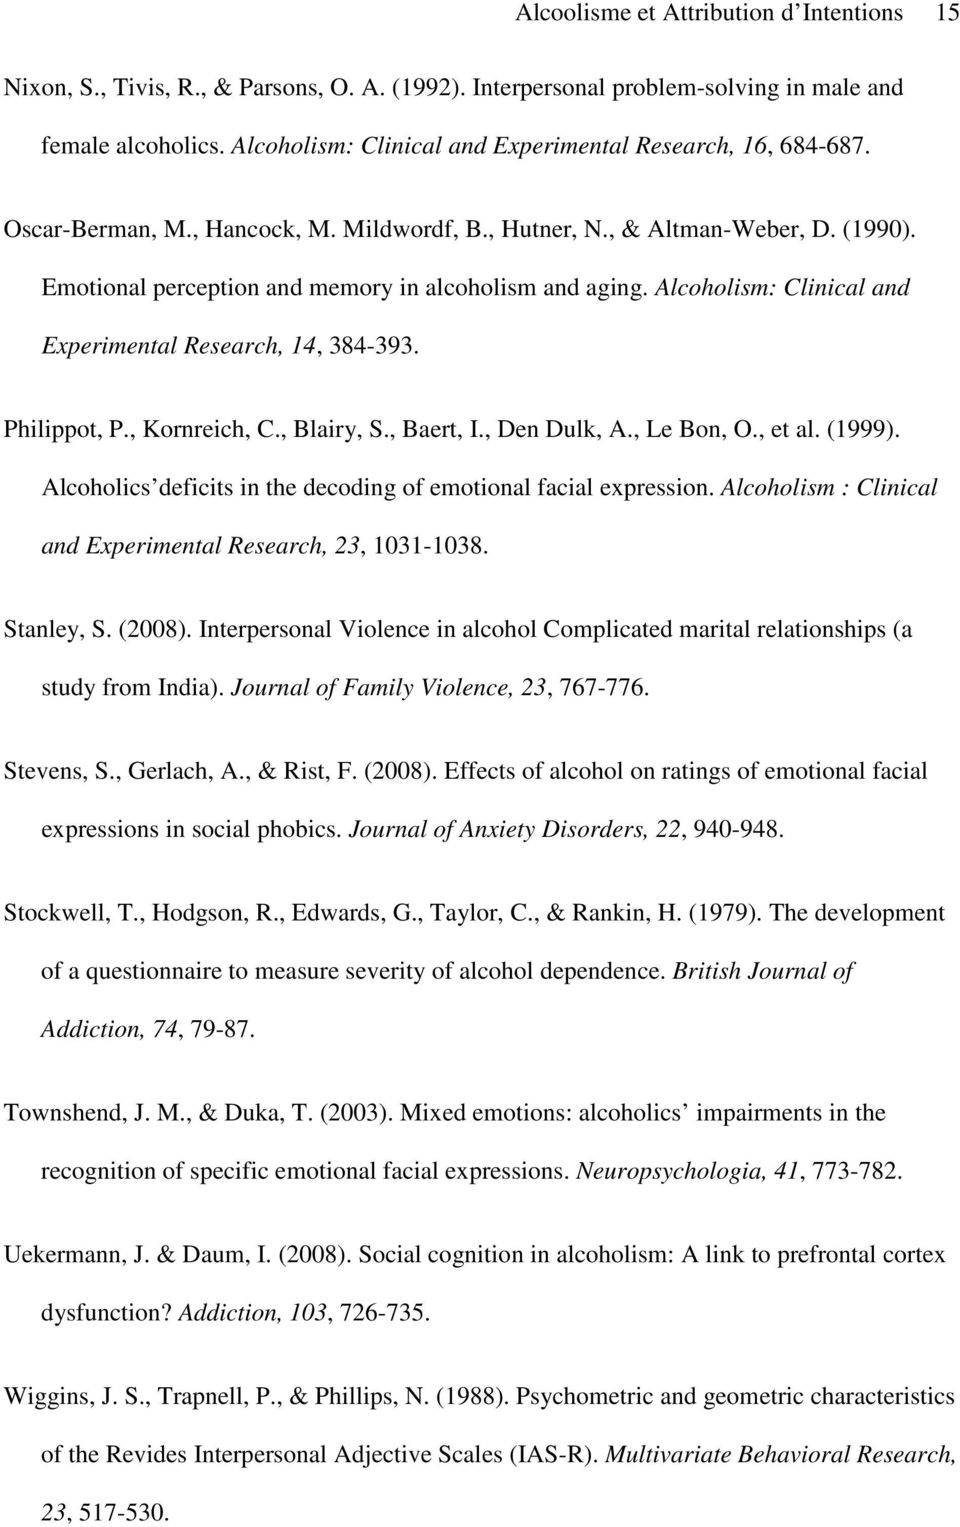 Emotional perception and memory in alcoholism and aging. Alcoholism: Clinical and Experimental Research, 14, 384-393. Philippot, P., Kornreich, C., Blairy, S., Baert, I., Den Dulk, A., Le Bon, O.